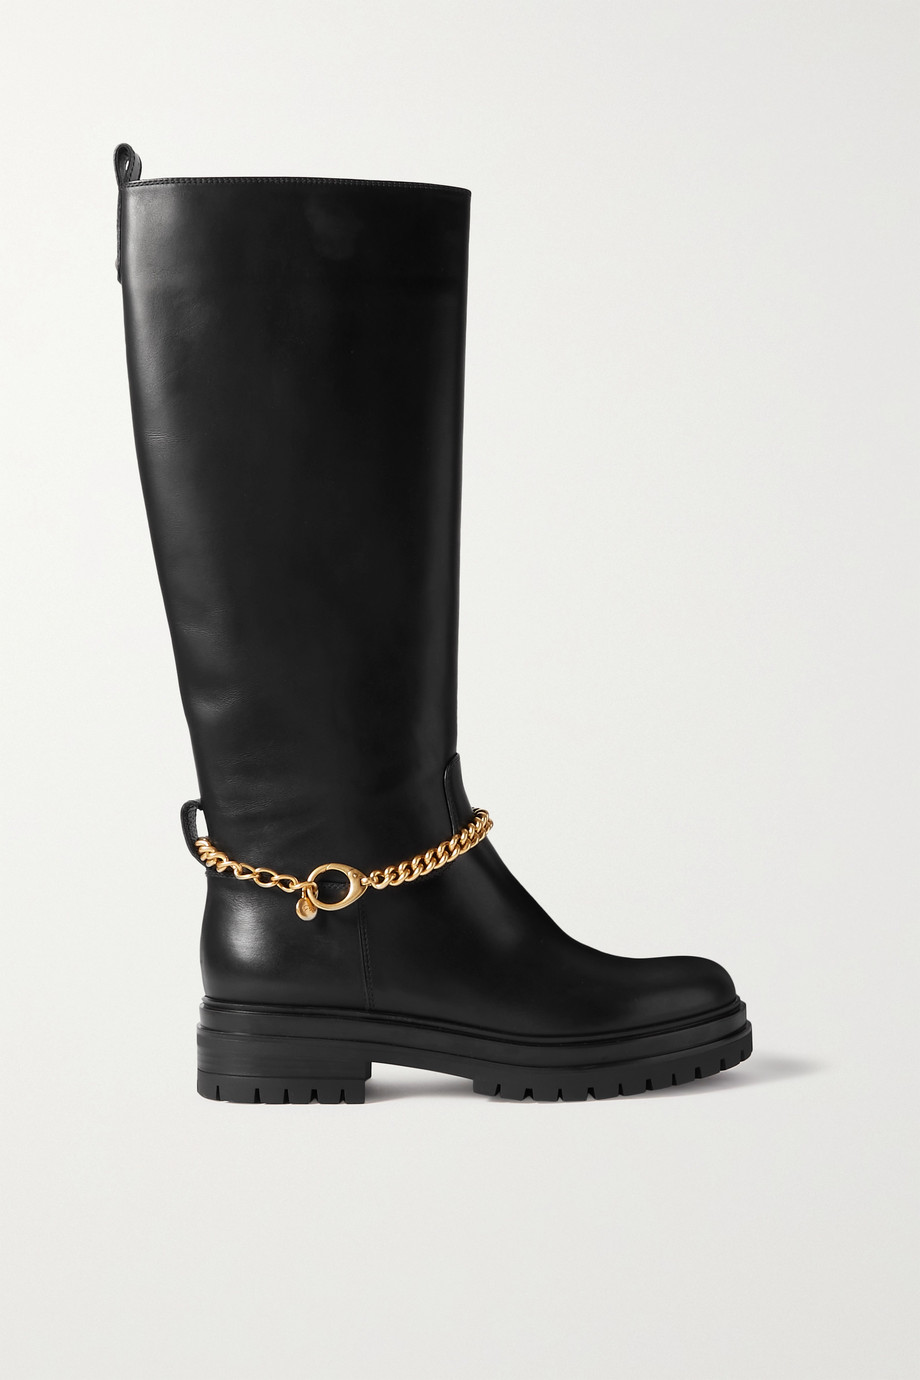 Gianvito Rossi Chain-embellished leather knee boots